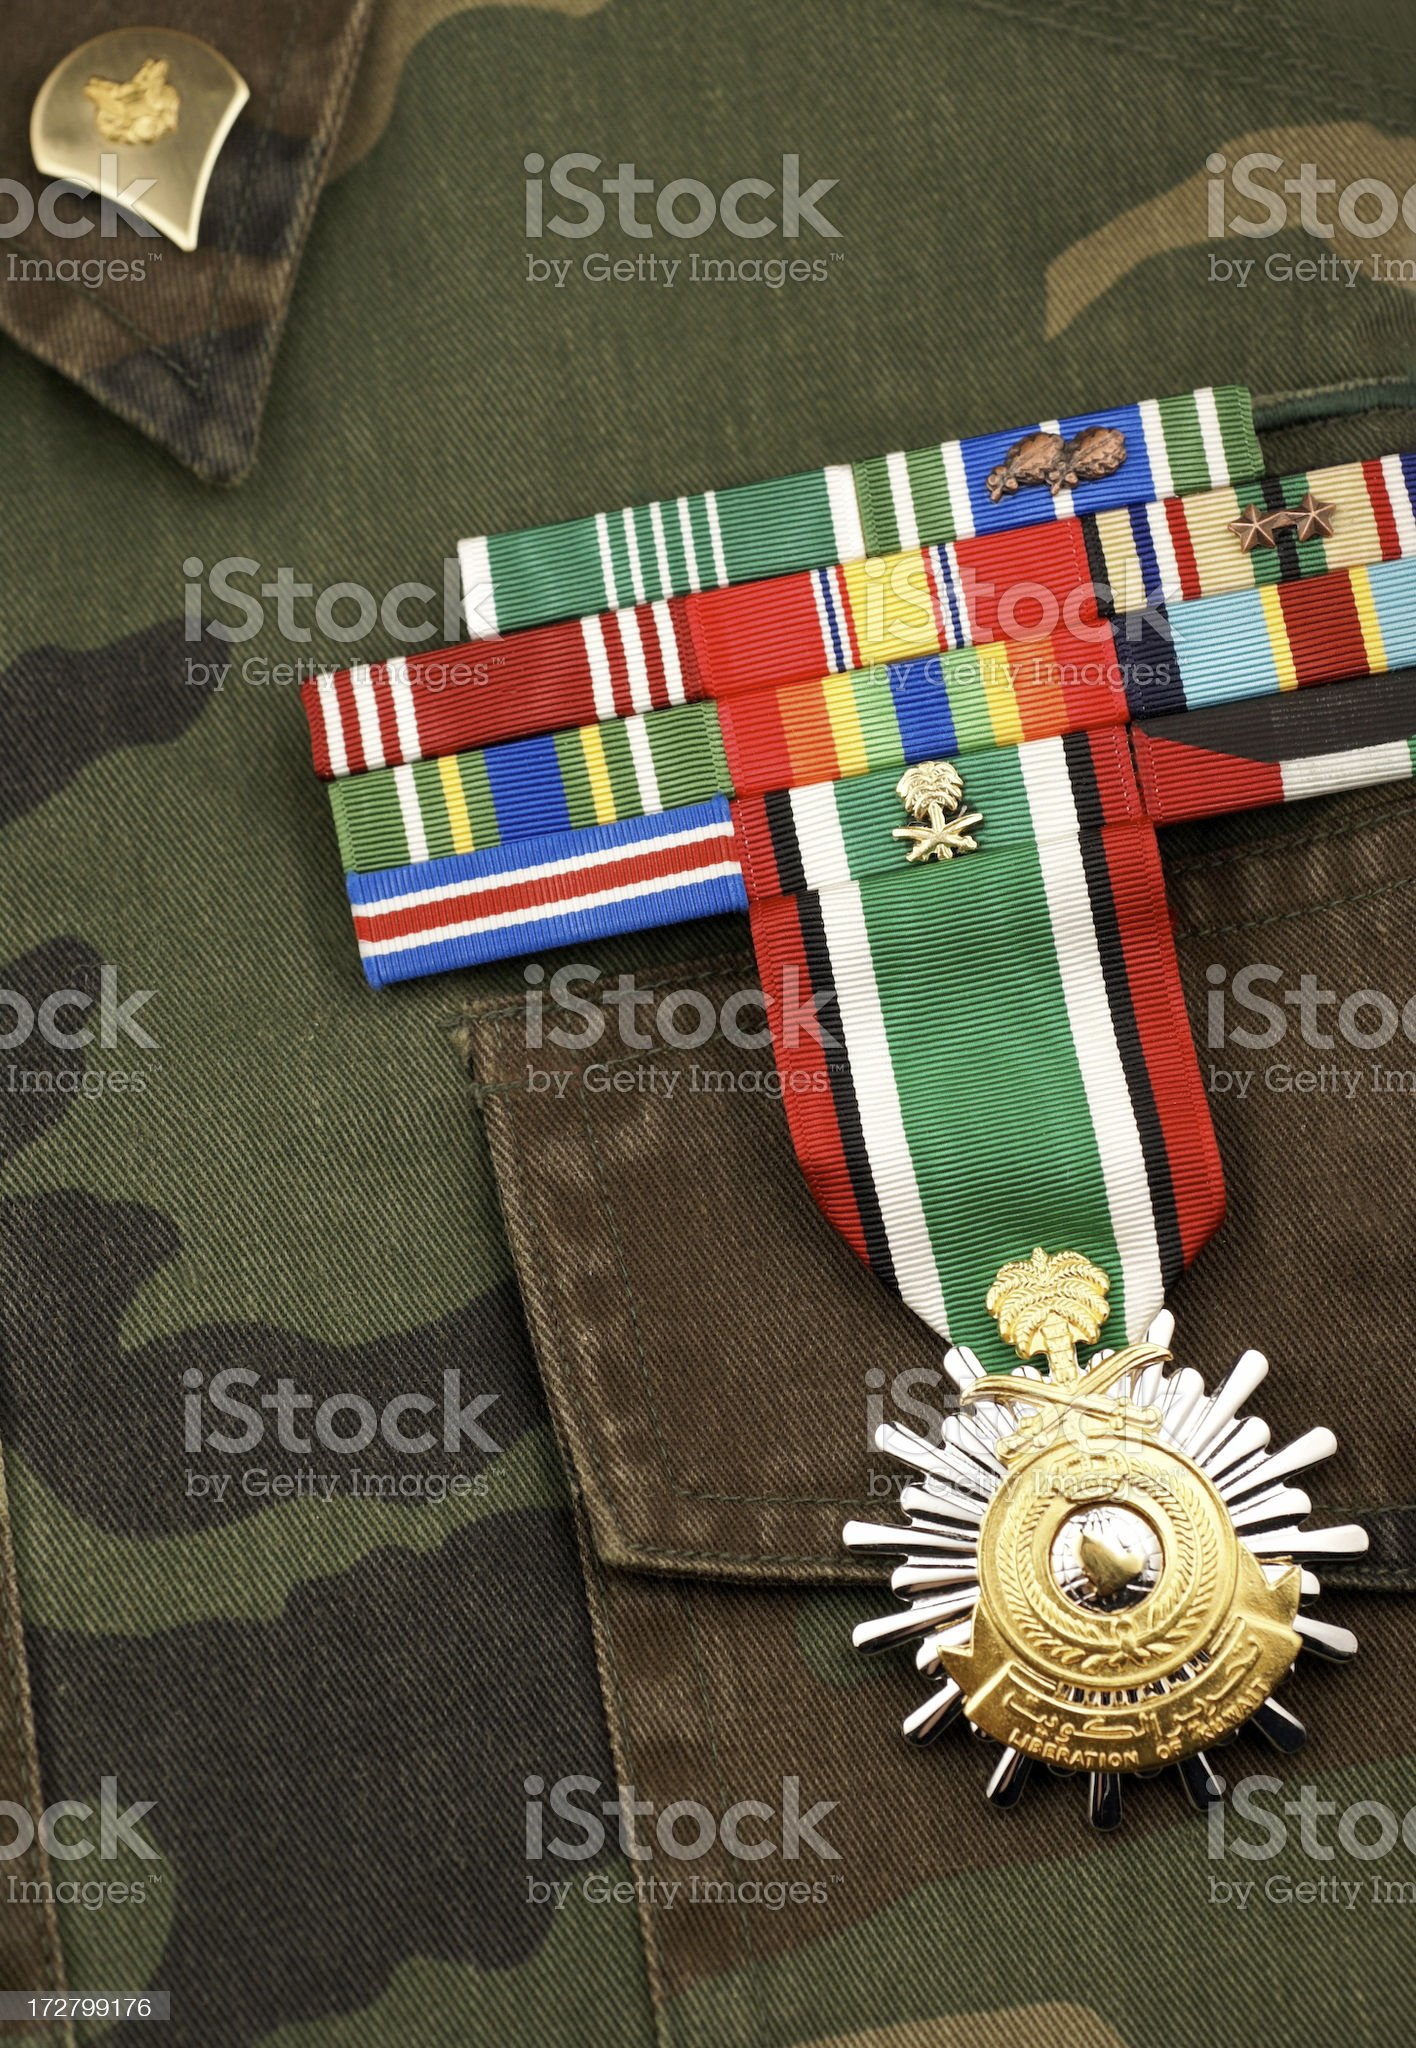 Camouflage Uniform with Ribbons and Medal royalty-free stock photo